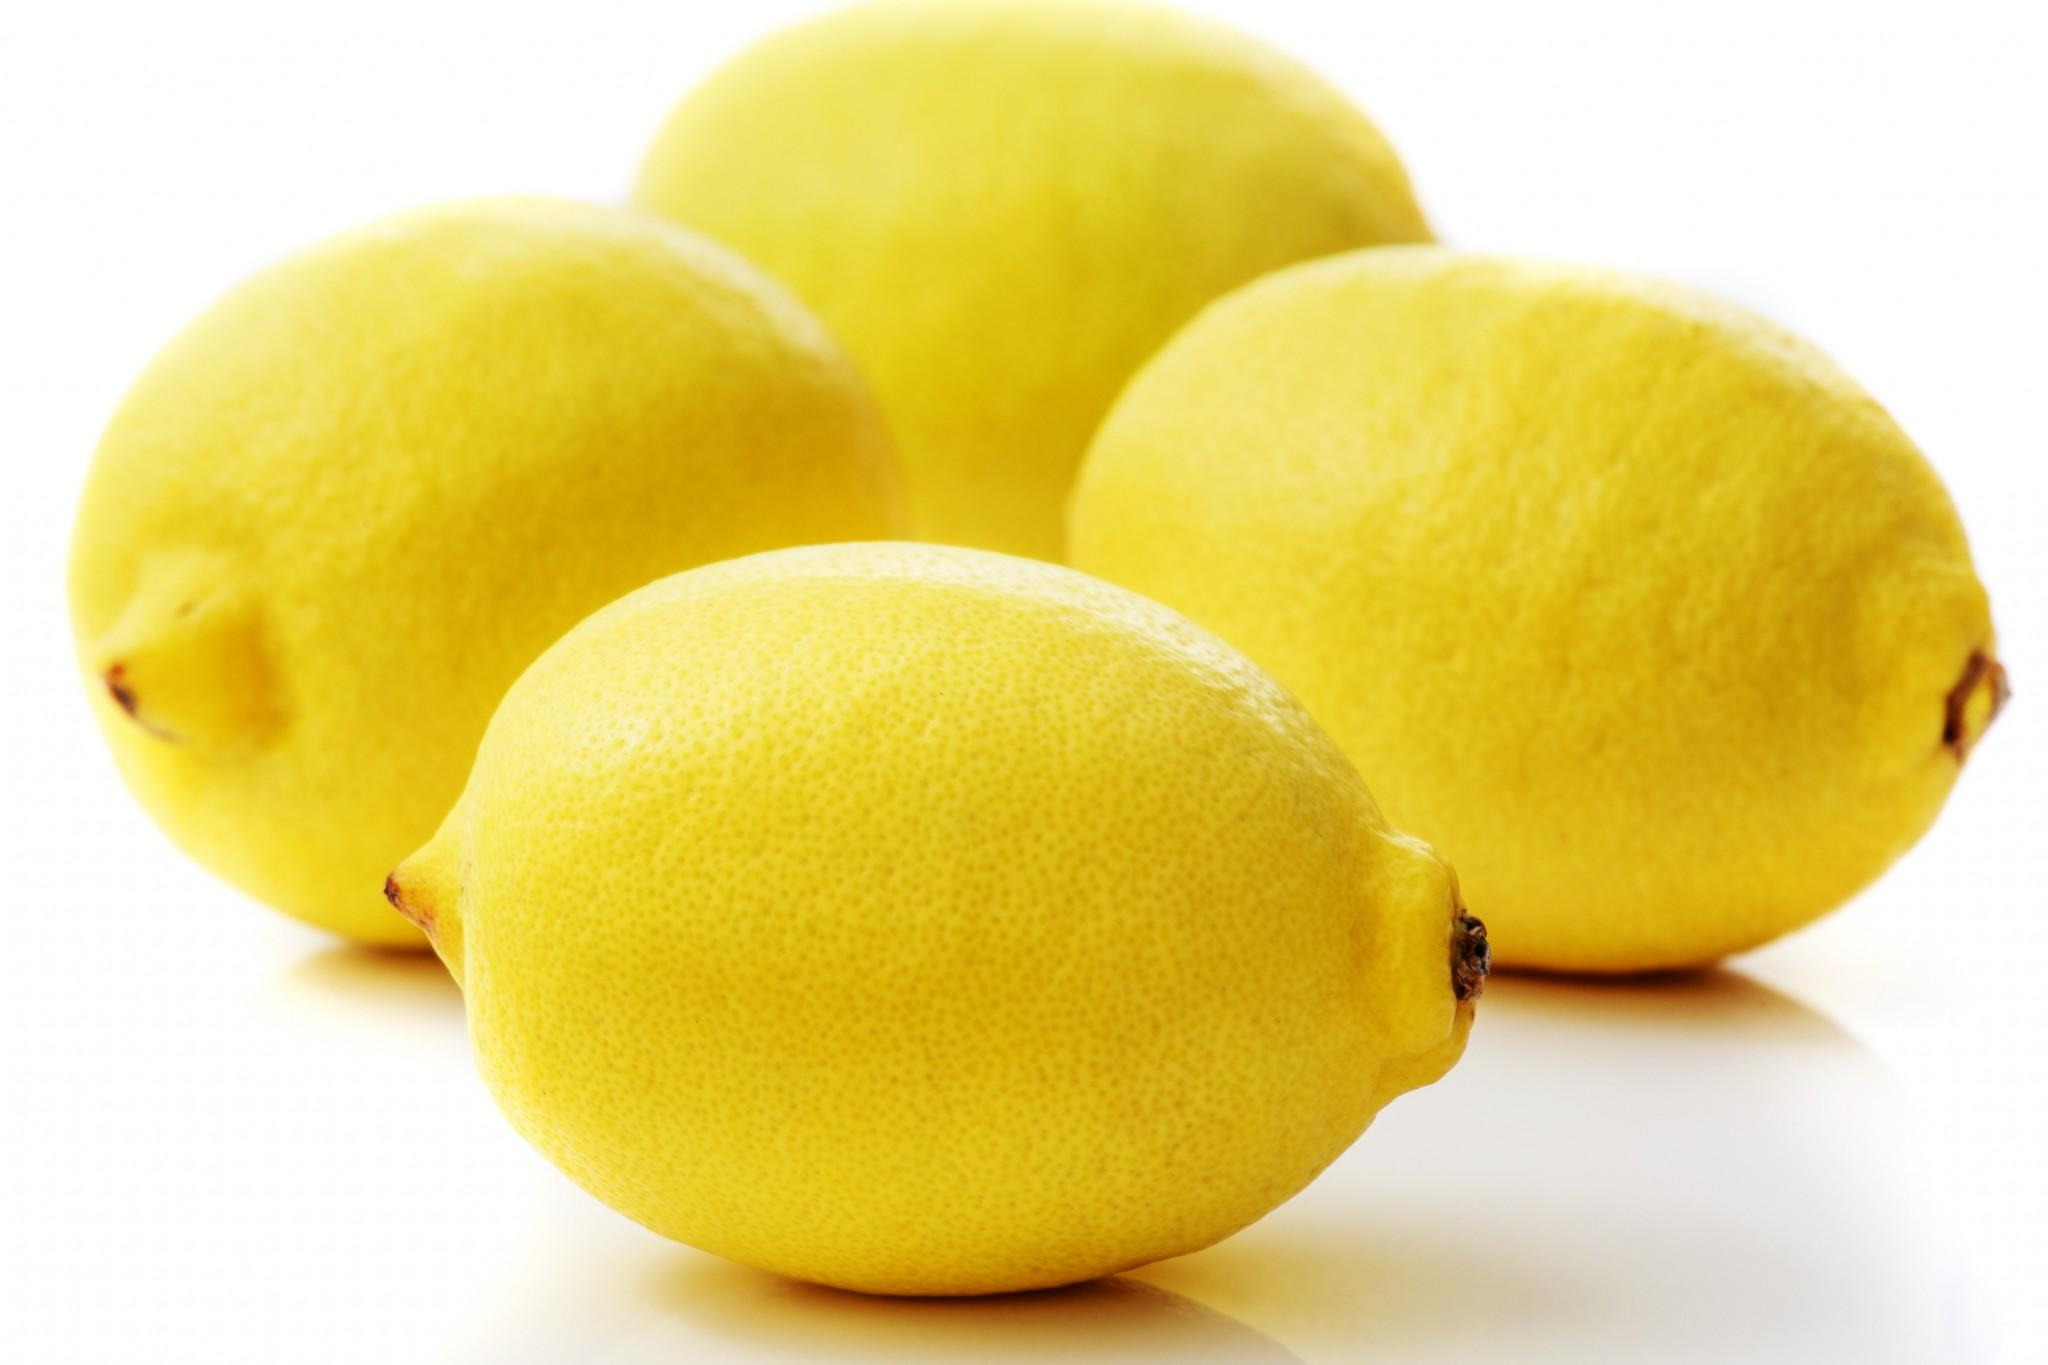 This viral photo of lemons is helping women detect breast cancer